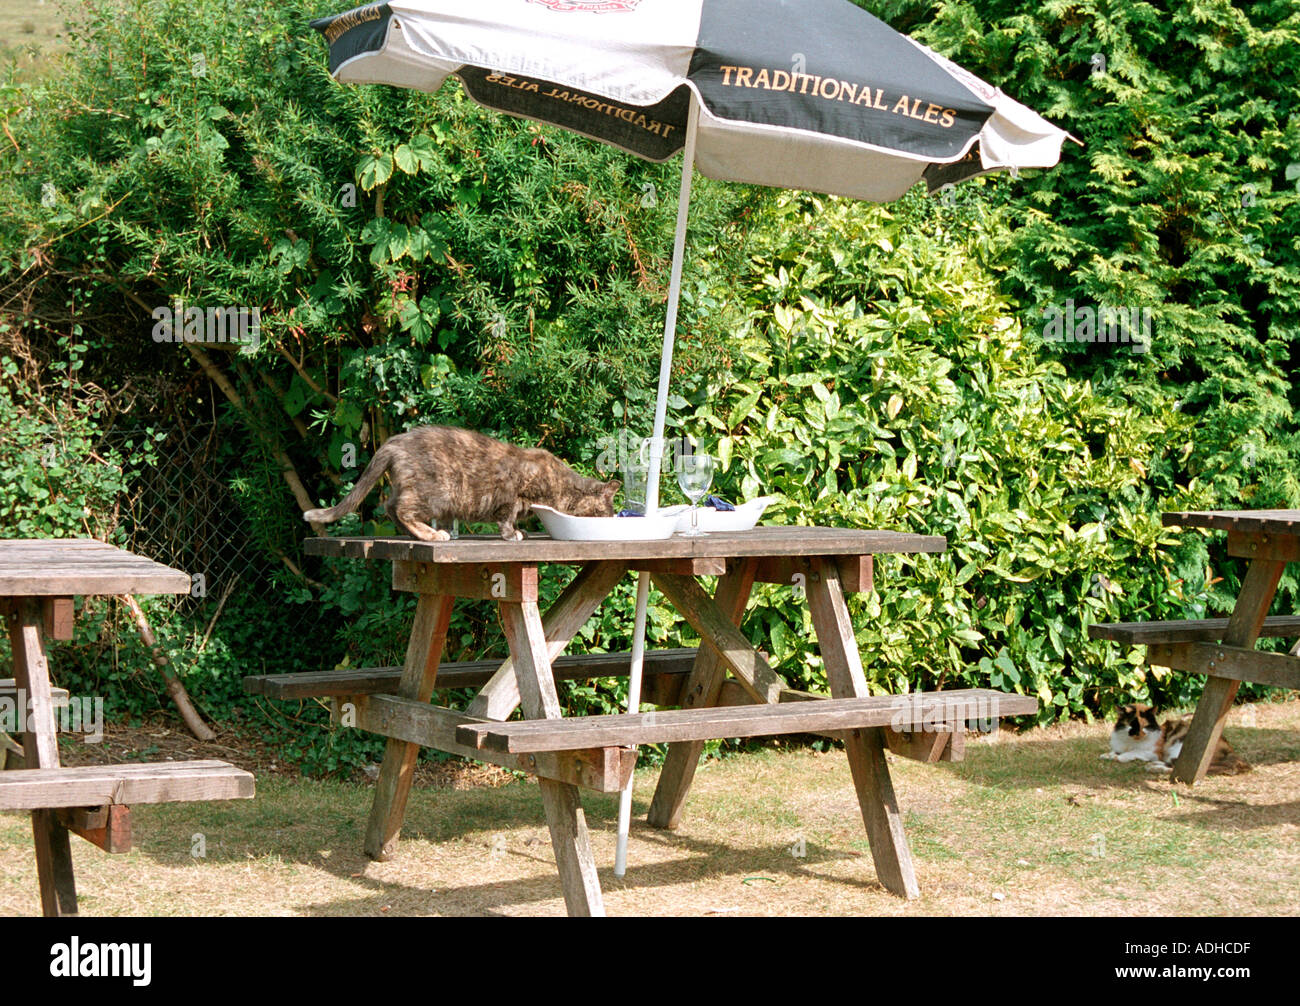 The cat is a novel way of clearing up at an English pub - Stock Image